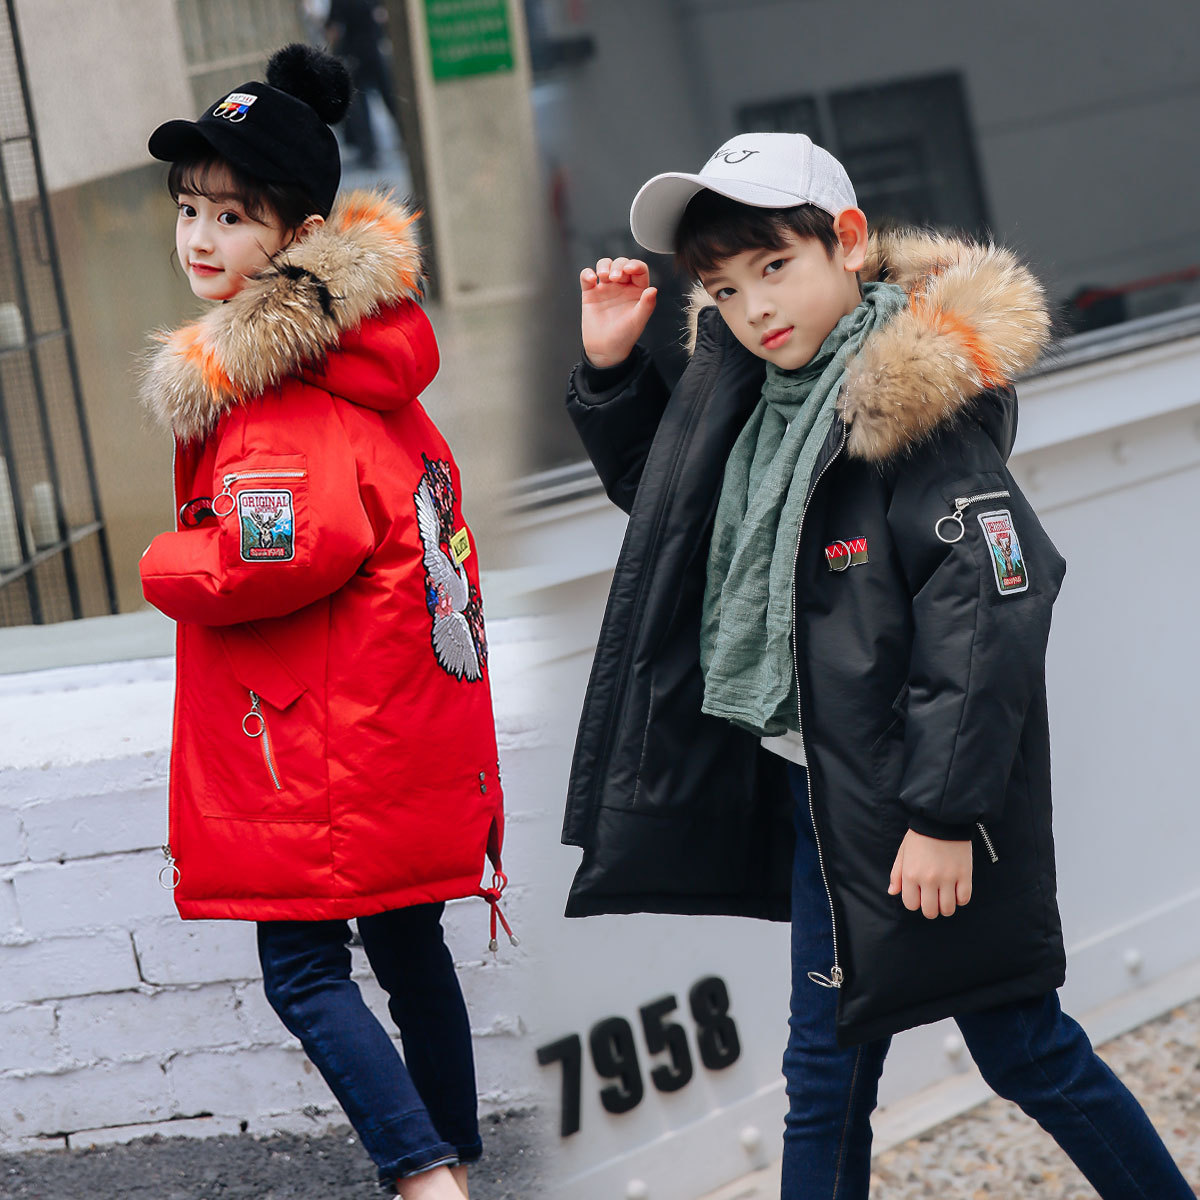 New children down jacket in winter long private even more caps cuhk children warm season han edition children's clothes gxf children down jacket 2018 new girls more down jacket to keep warm in cuhk children s long winter coat